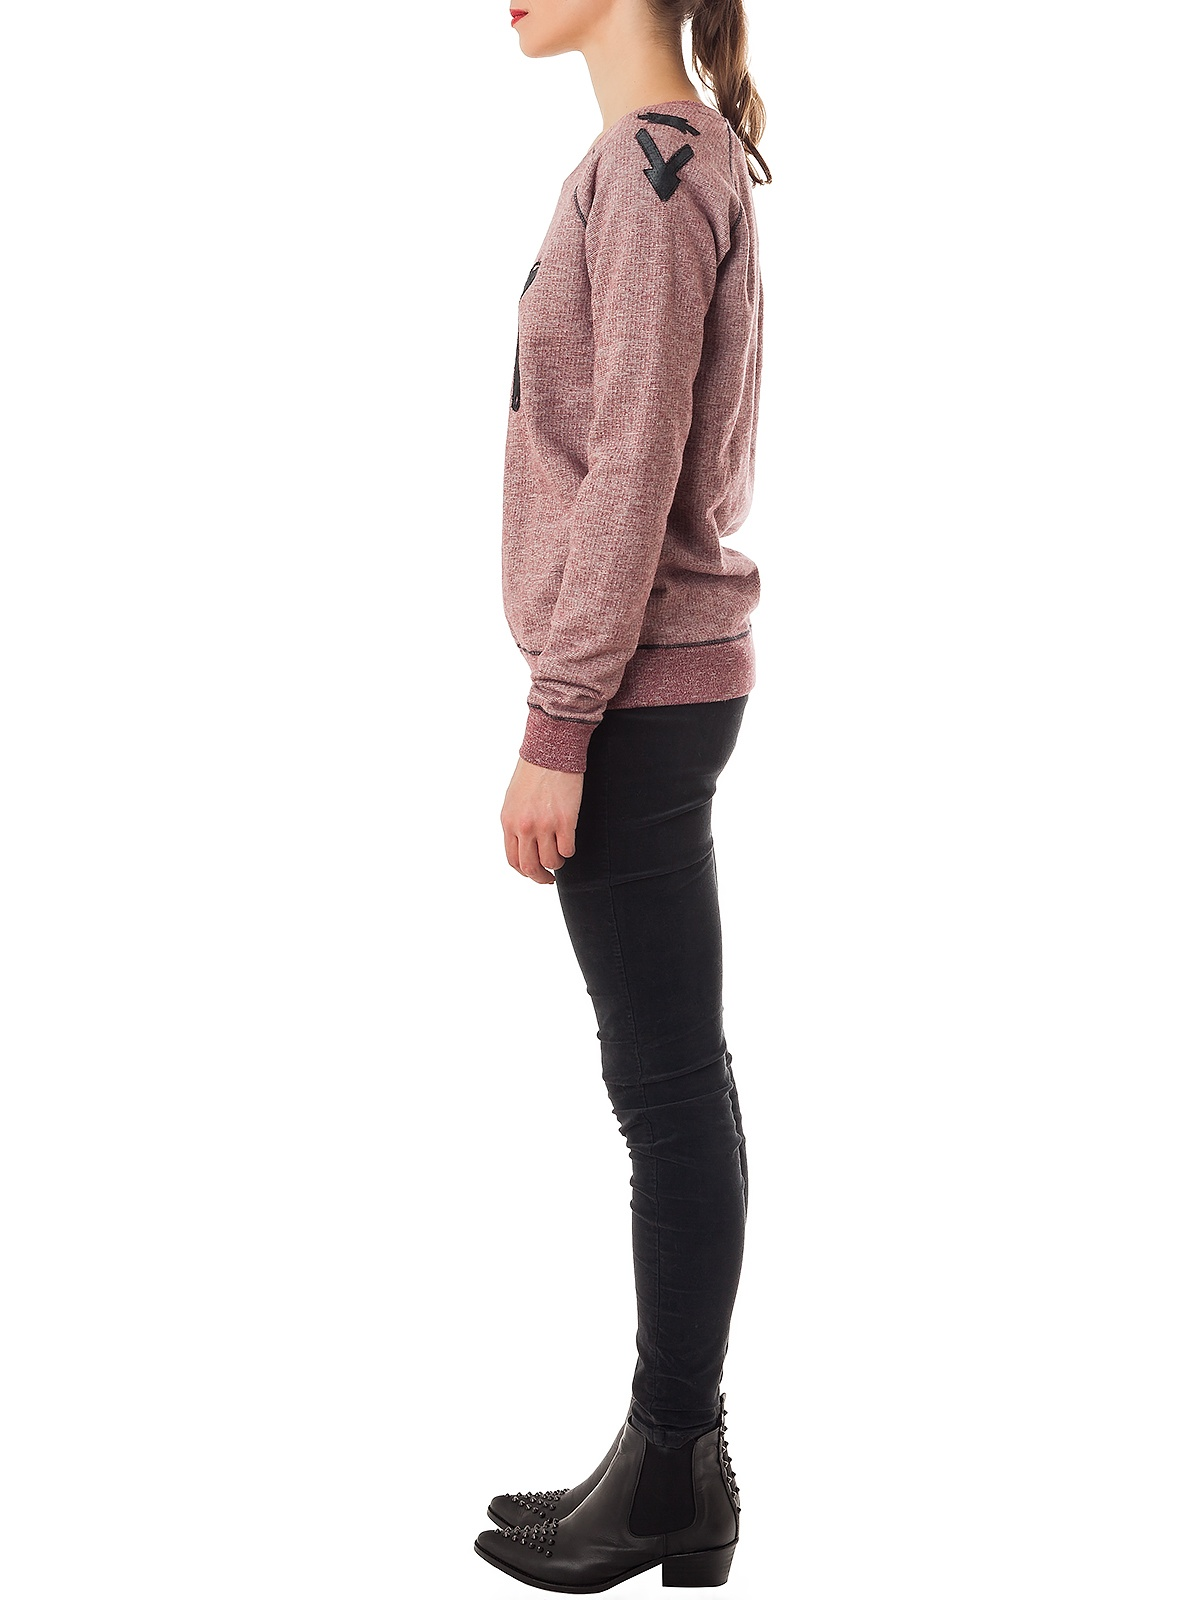 NY SWEATSHIRT PINK JUMPER | GIRISSIMA.COM - Collectible fashion to love and to last